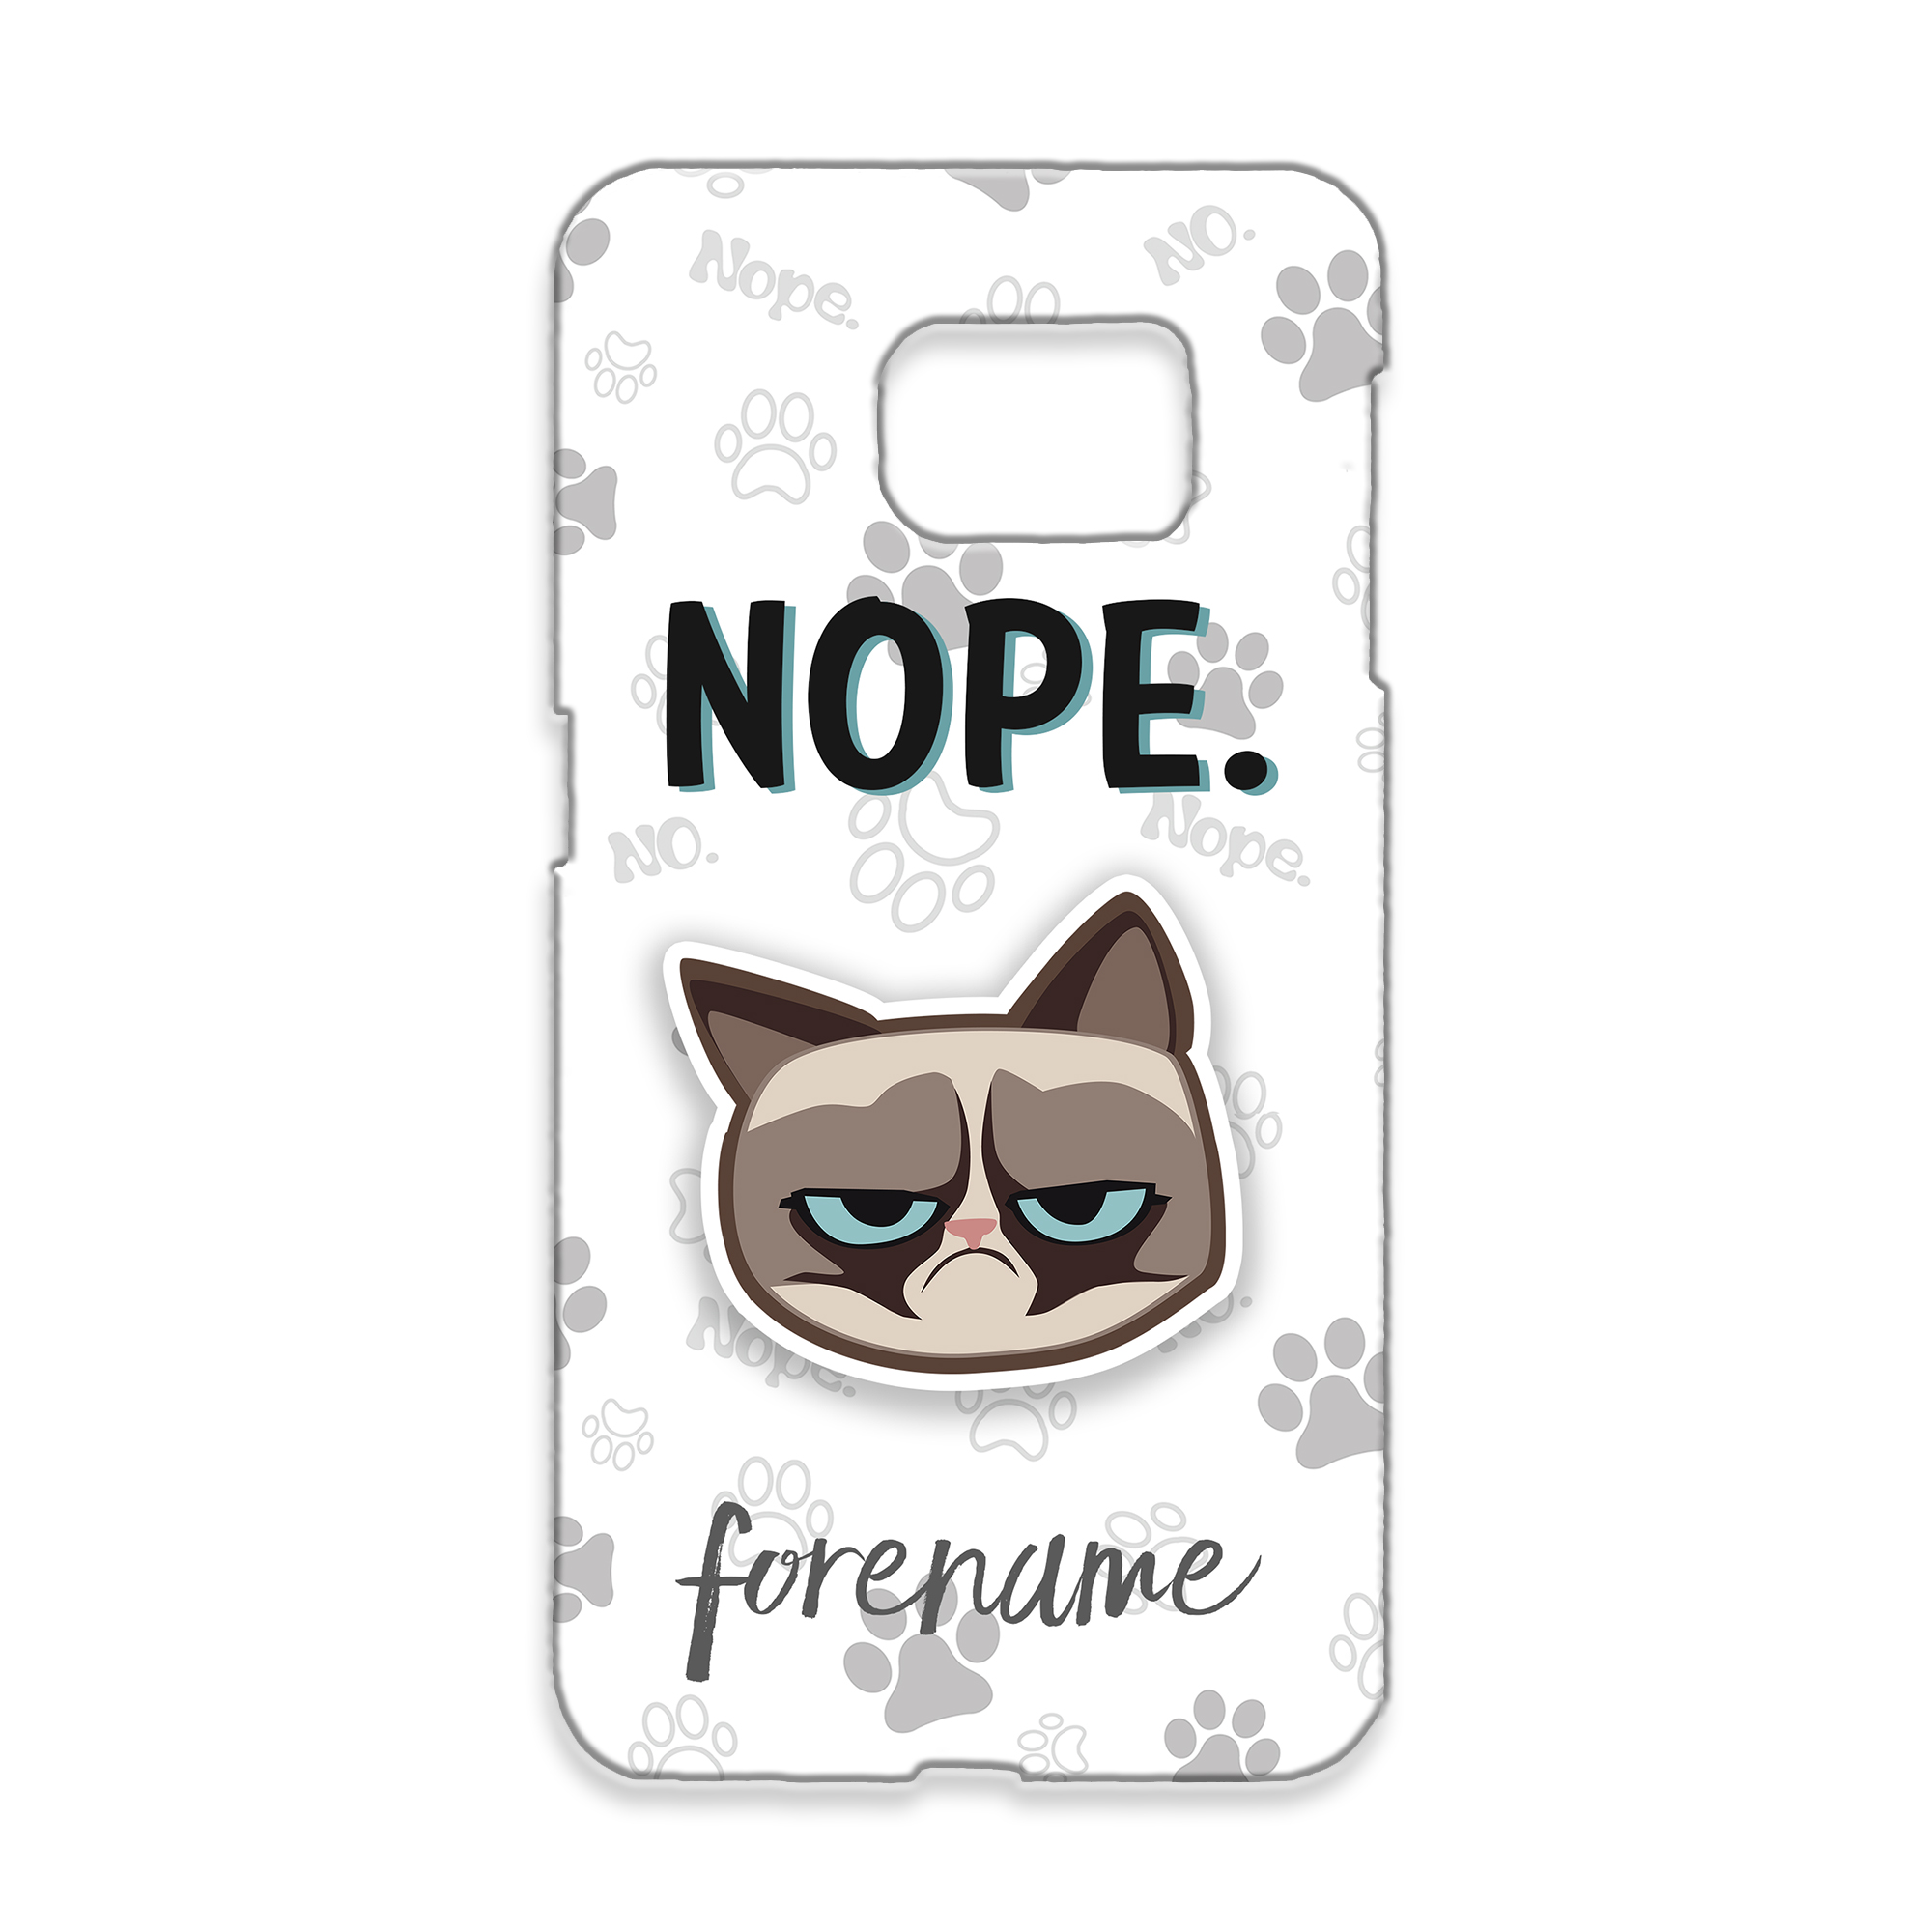 Grumpy Cat Emoji - Nope Samsung Case Grey